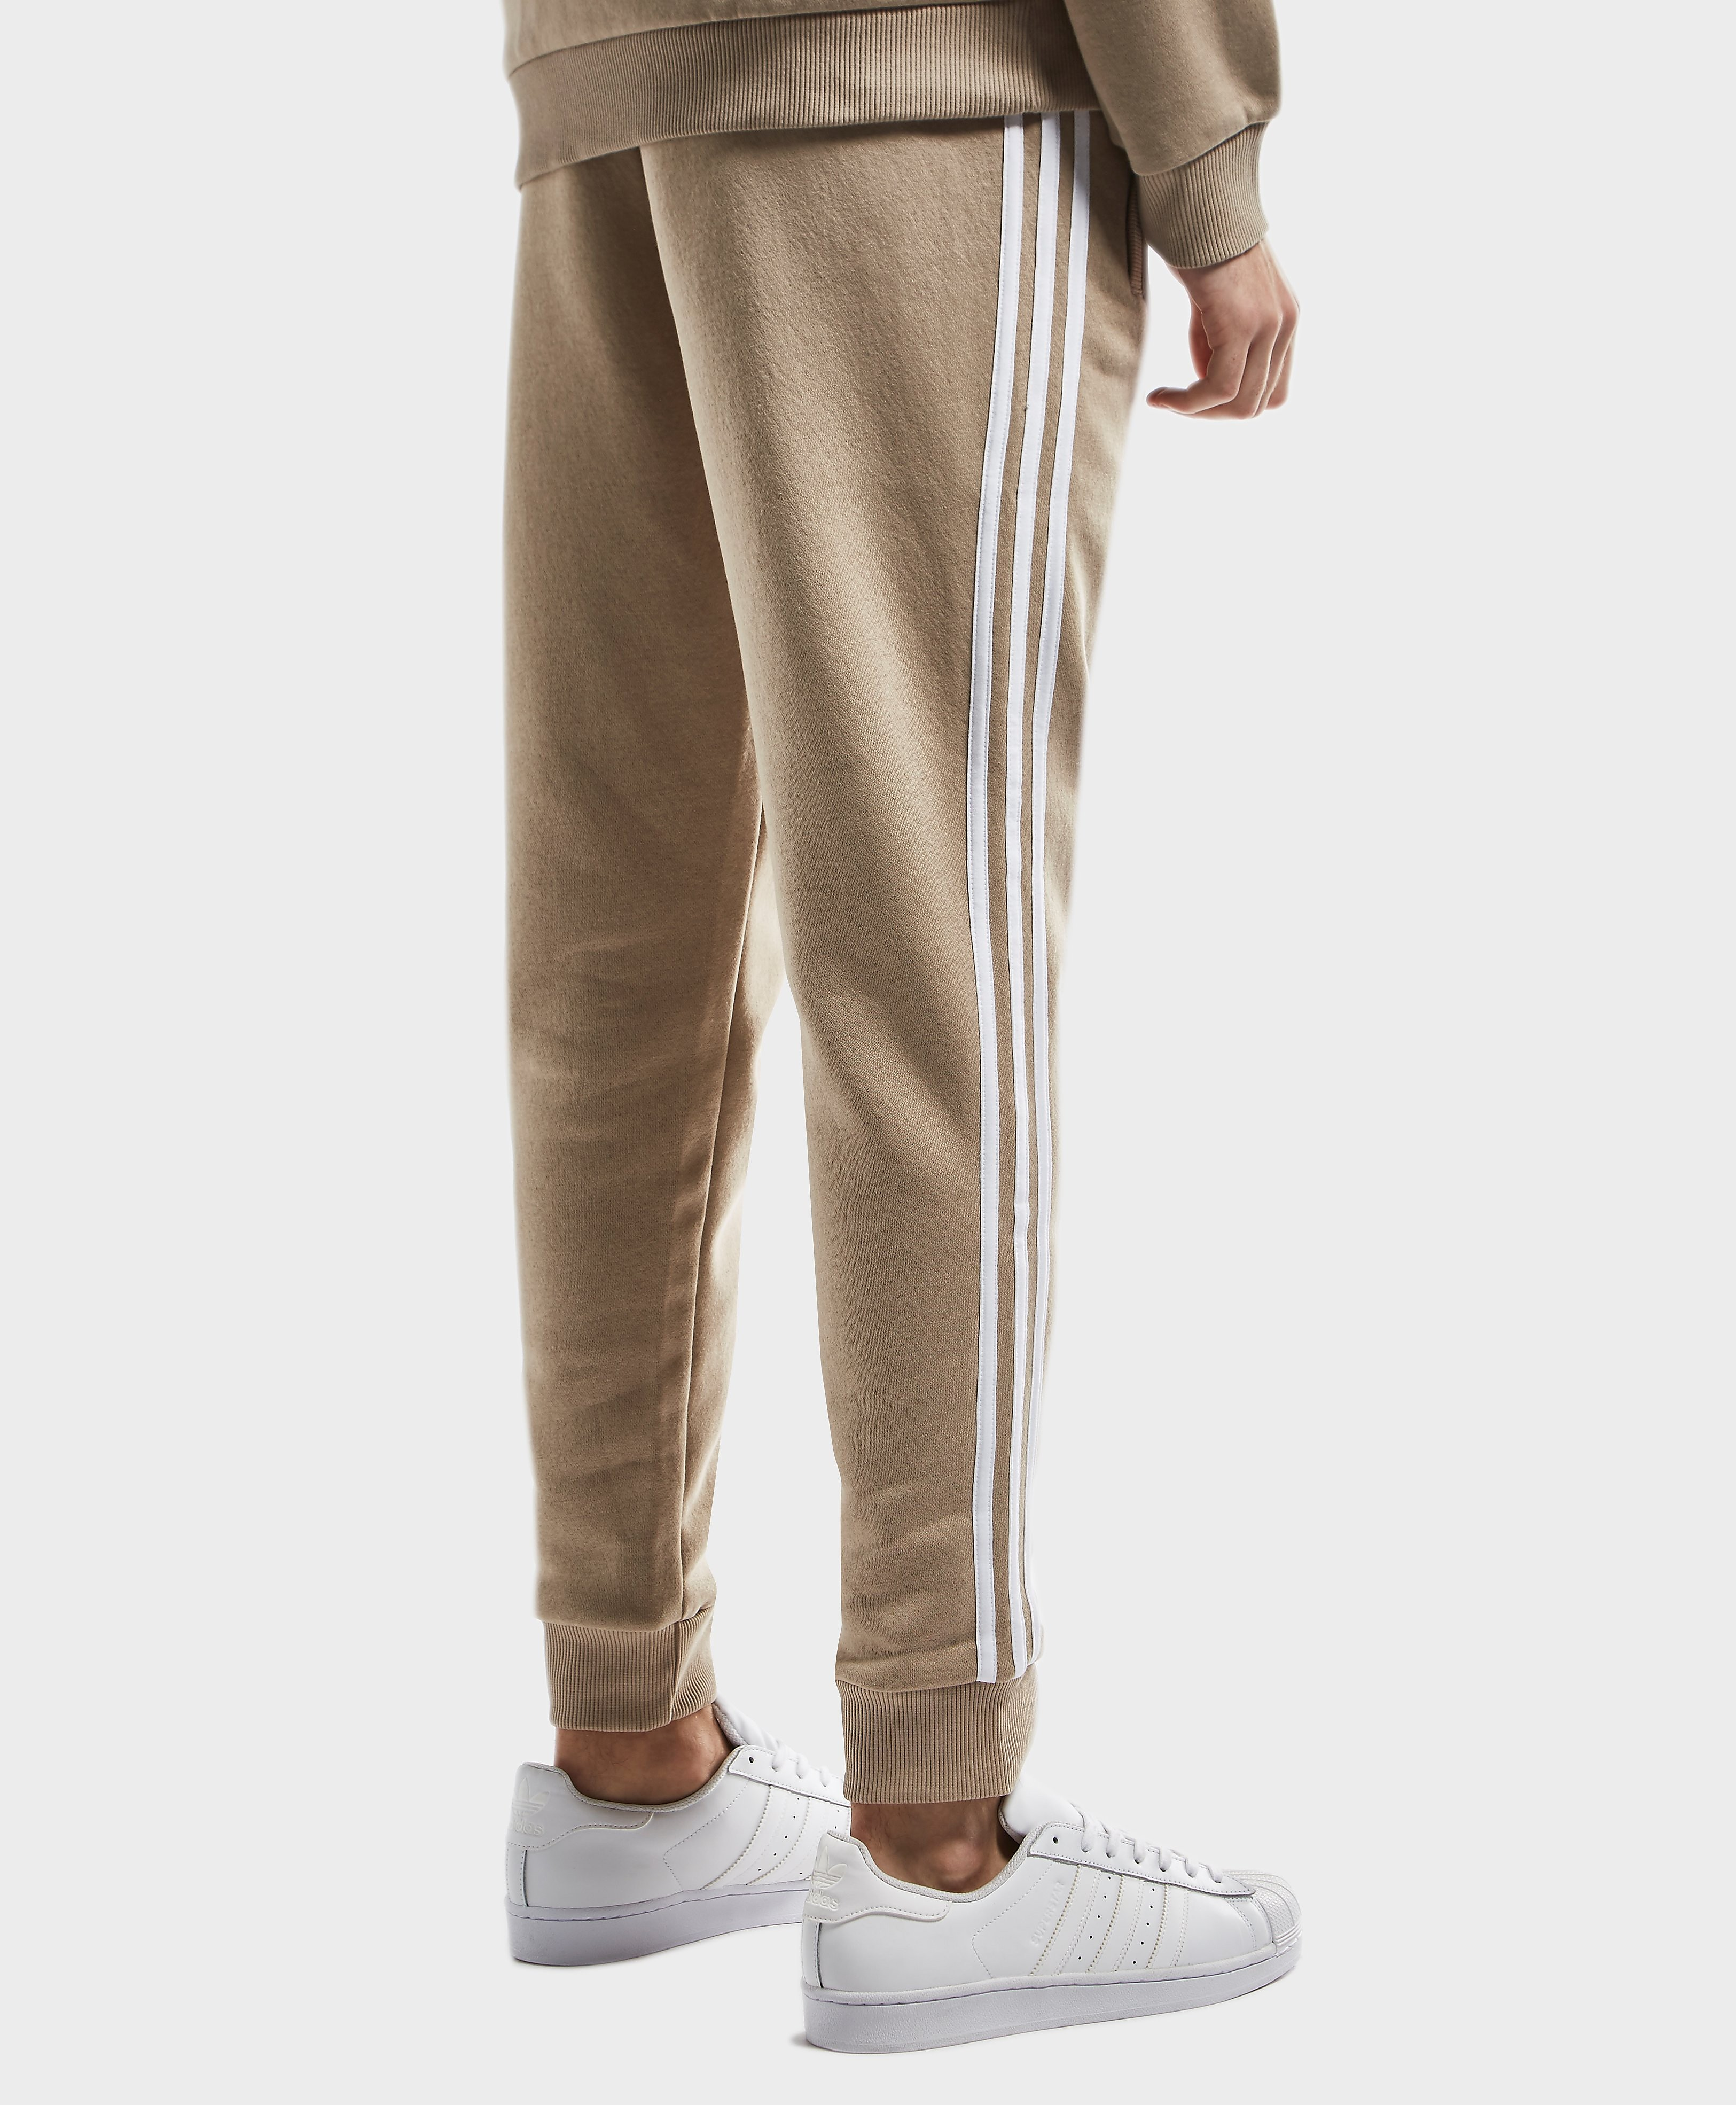 adidas Originals California Cuffed Track Pants